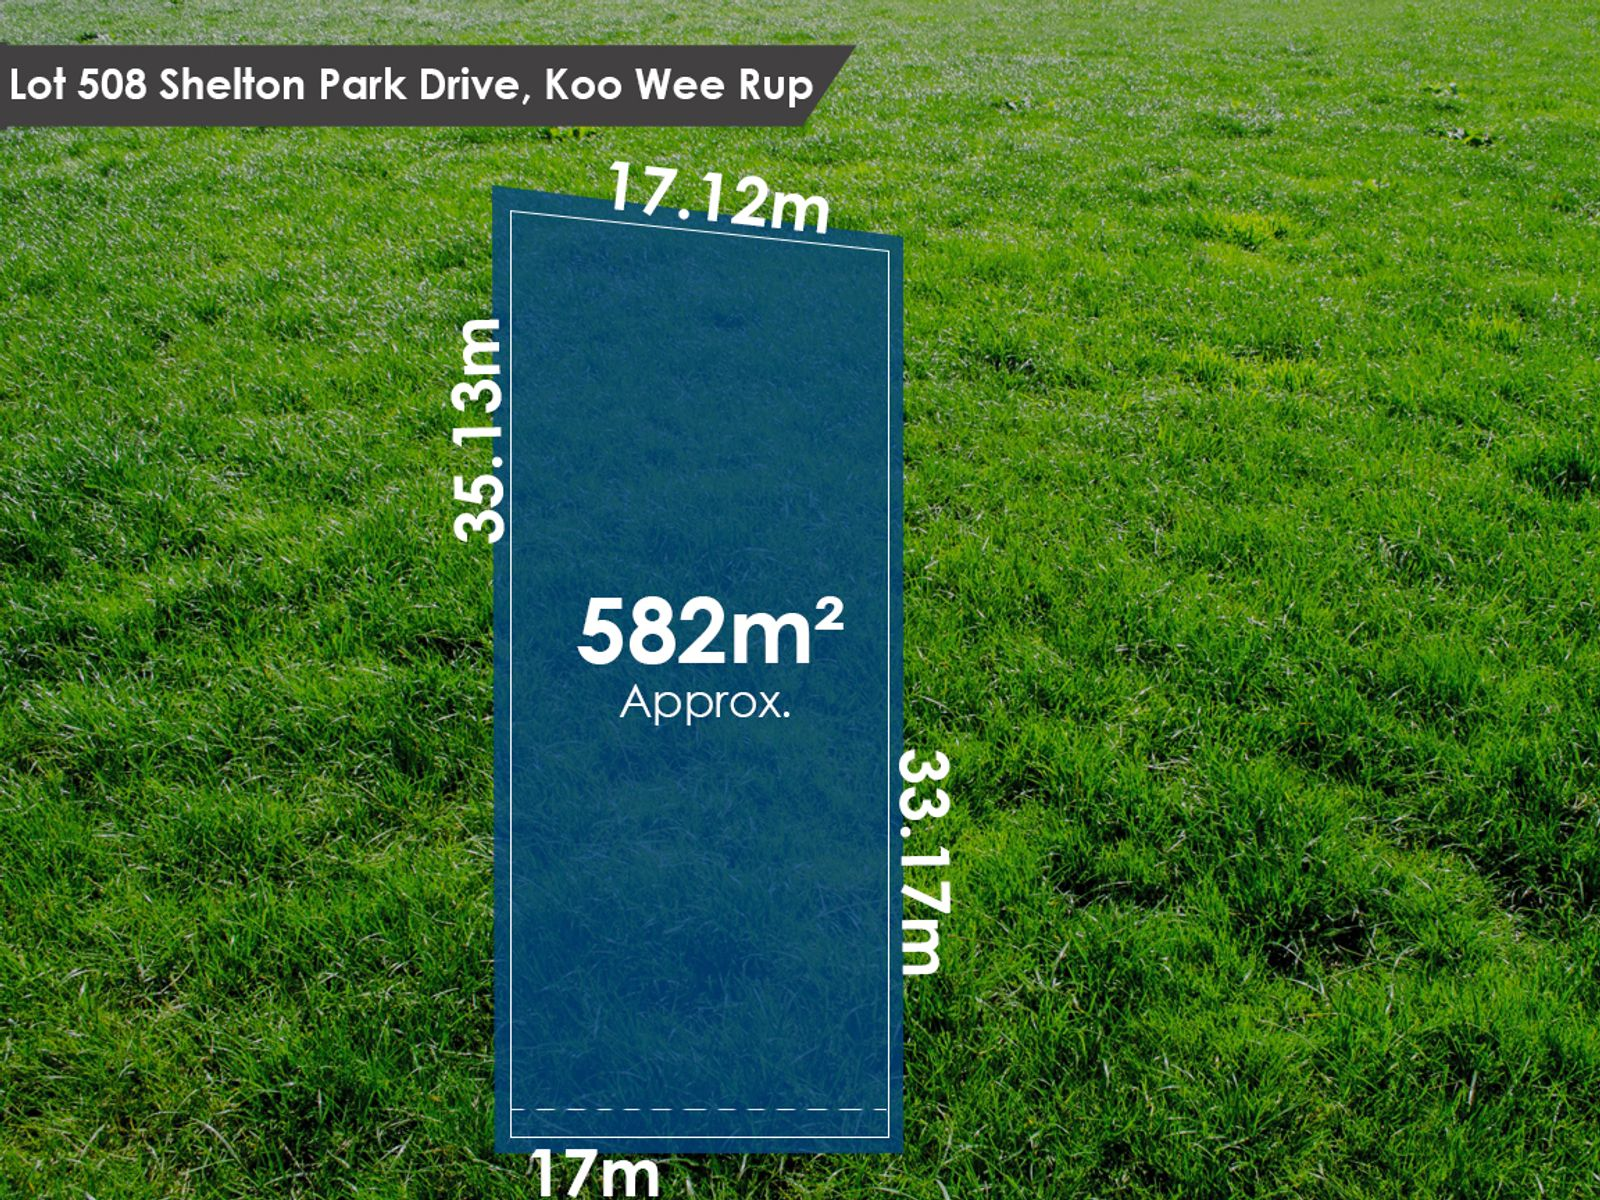 Lot 508 Shelton Park Drive, Koo Wee Rup, VIC 3981